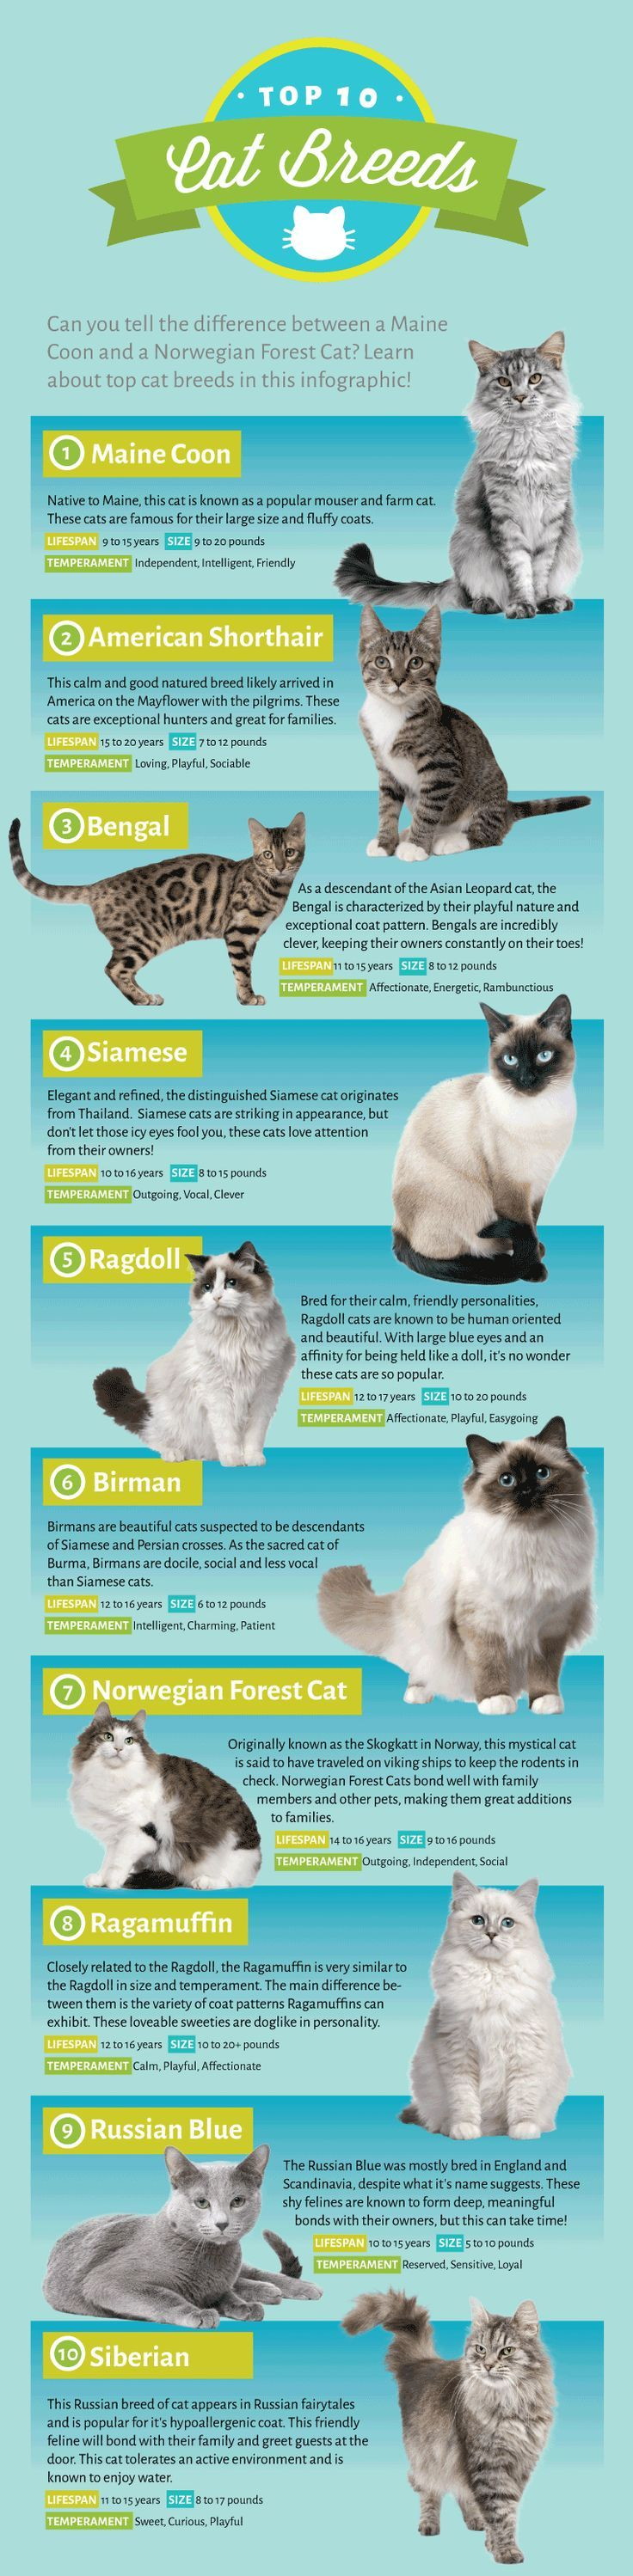 House Cats Cat Health Kittens And More Lovetoknow Cat Breeds Cat Breeds Siamese Cat Facts